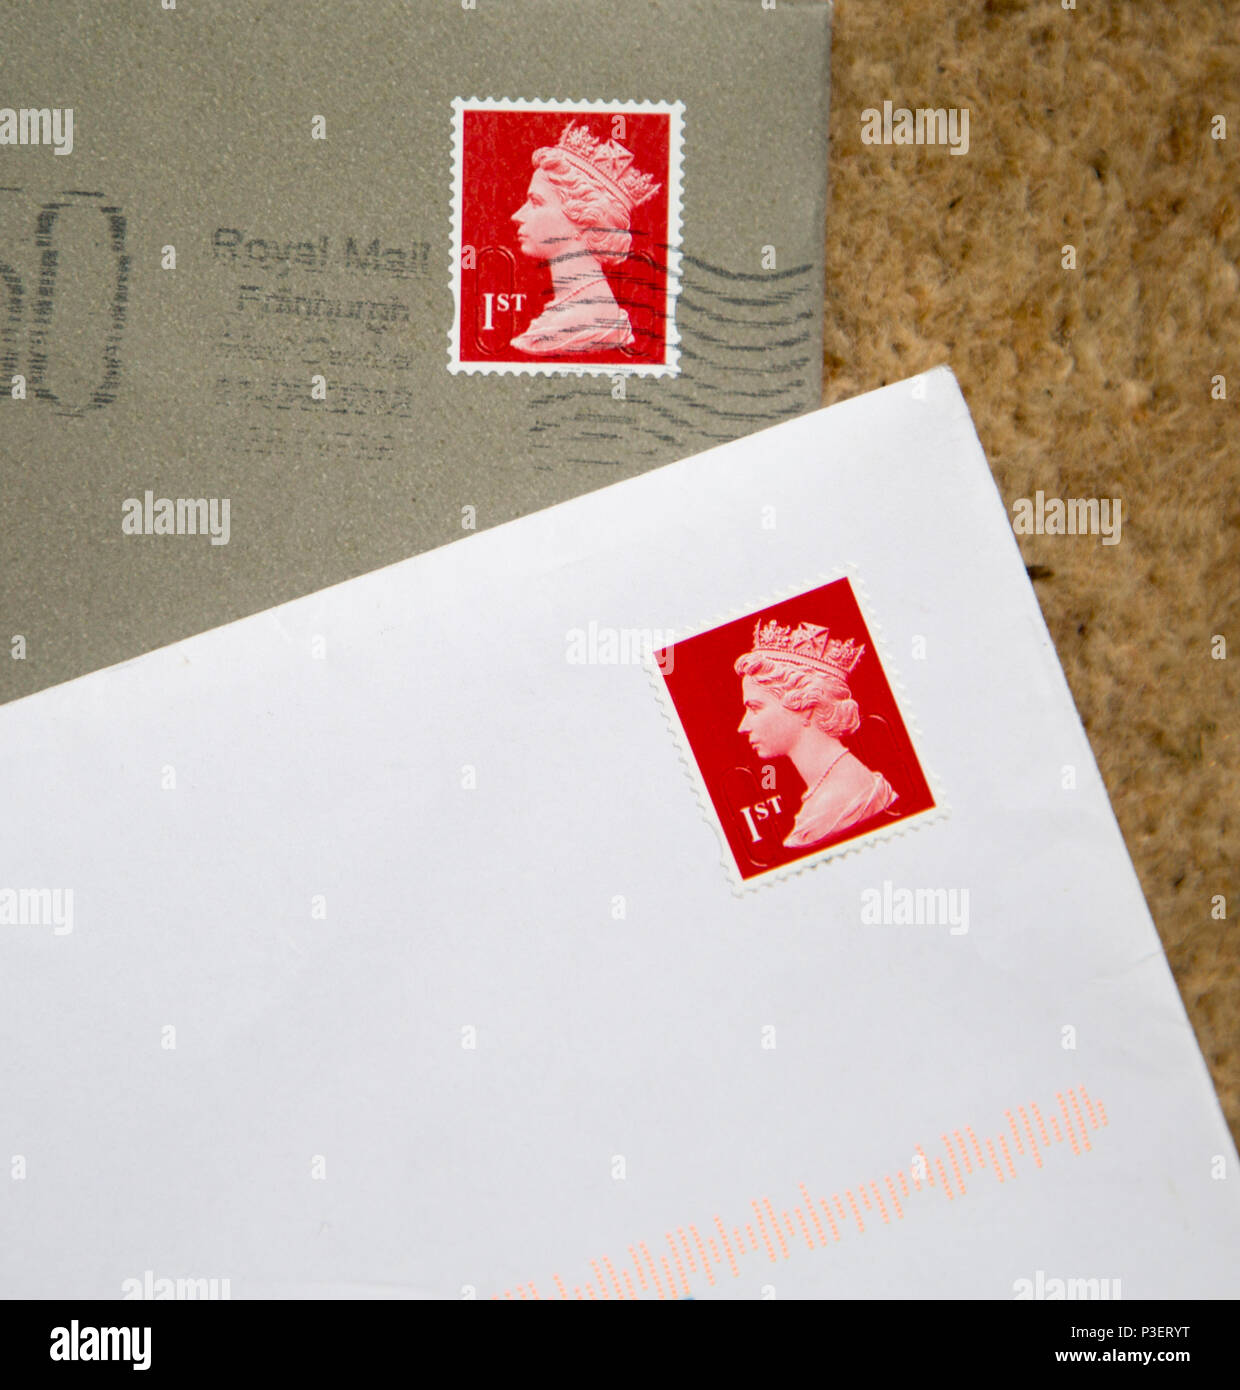 Looking down at letters in envelopes with red First class postage stamps, England, UK